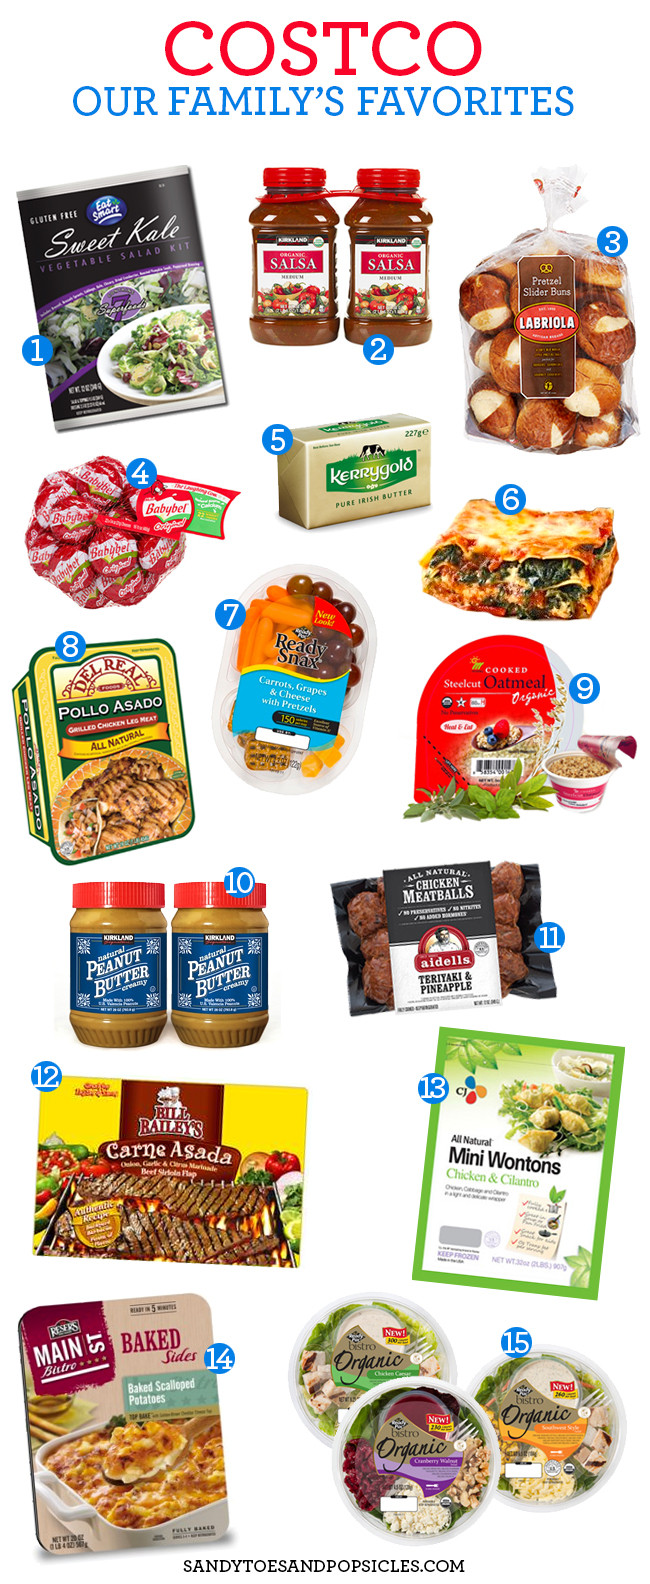 Costco Healthy Snacks  Our Family s Favorite Costco Foods Popsicle Blog